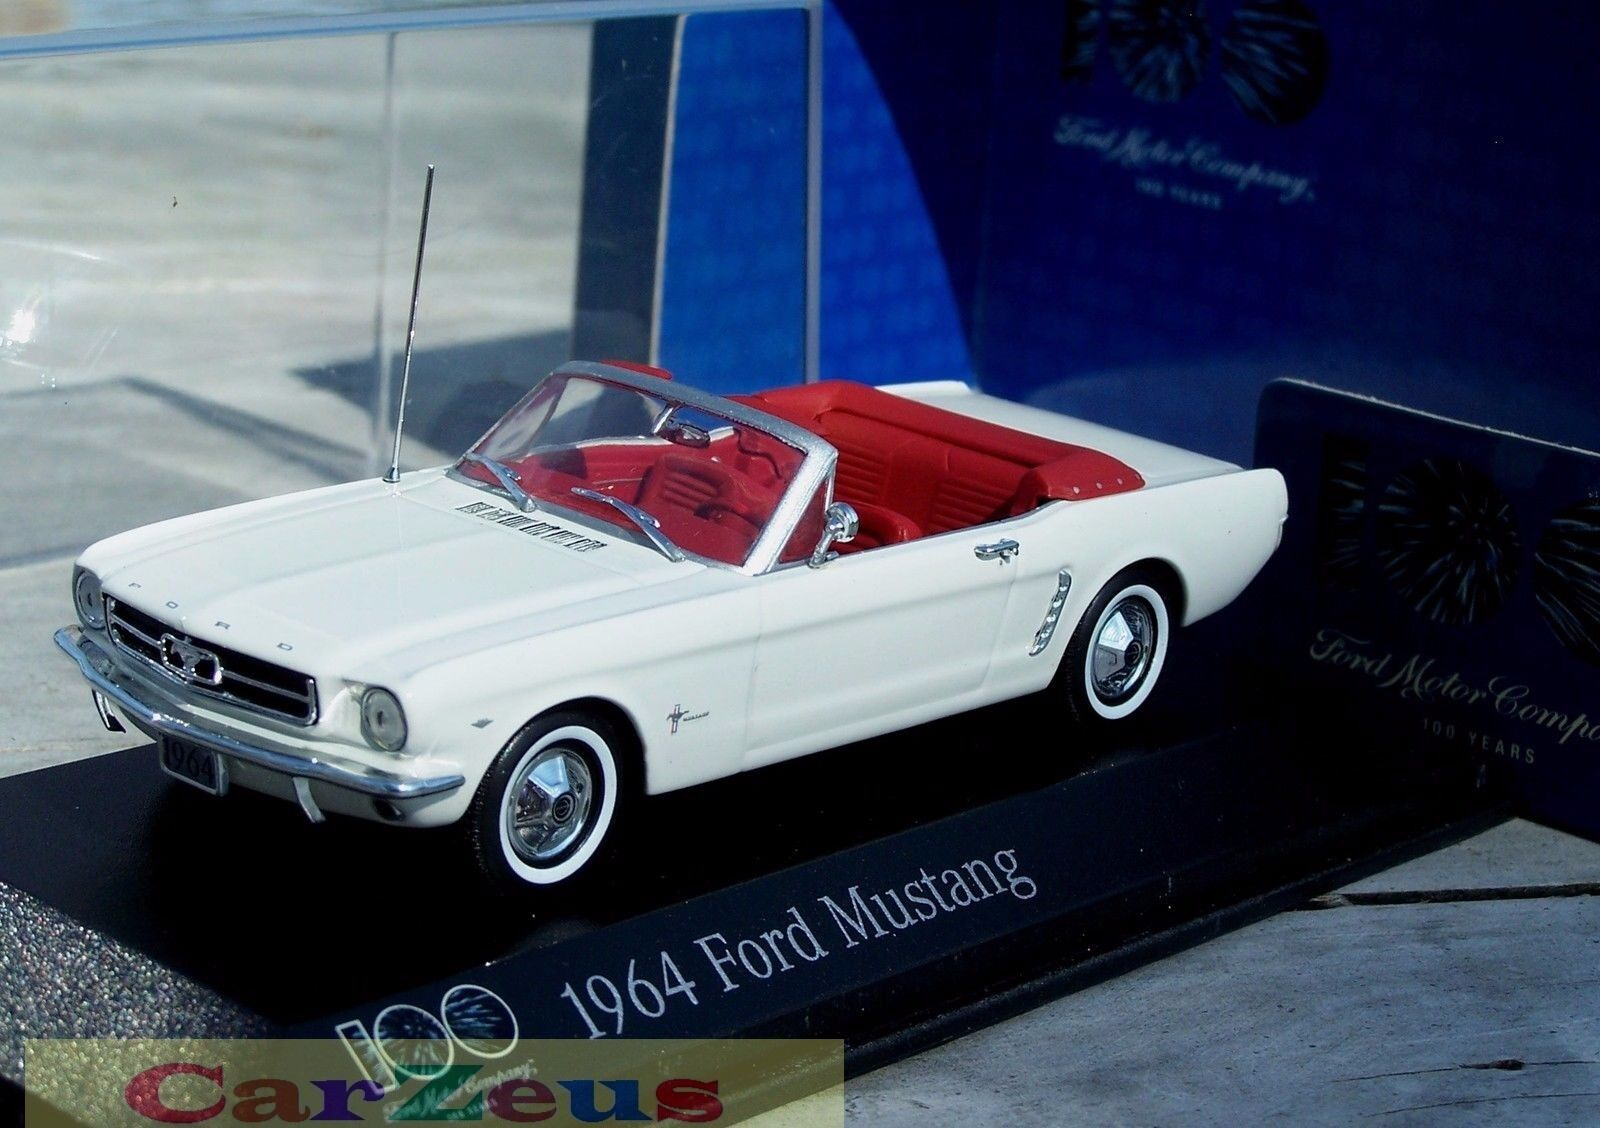 1 43 Minichamps 1964 Ford Mustang Congreenible, 100 Years of Ford Heart and Soul